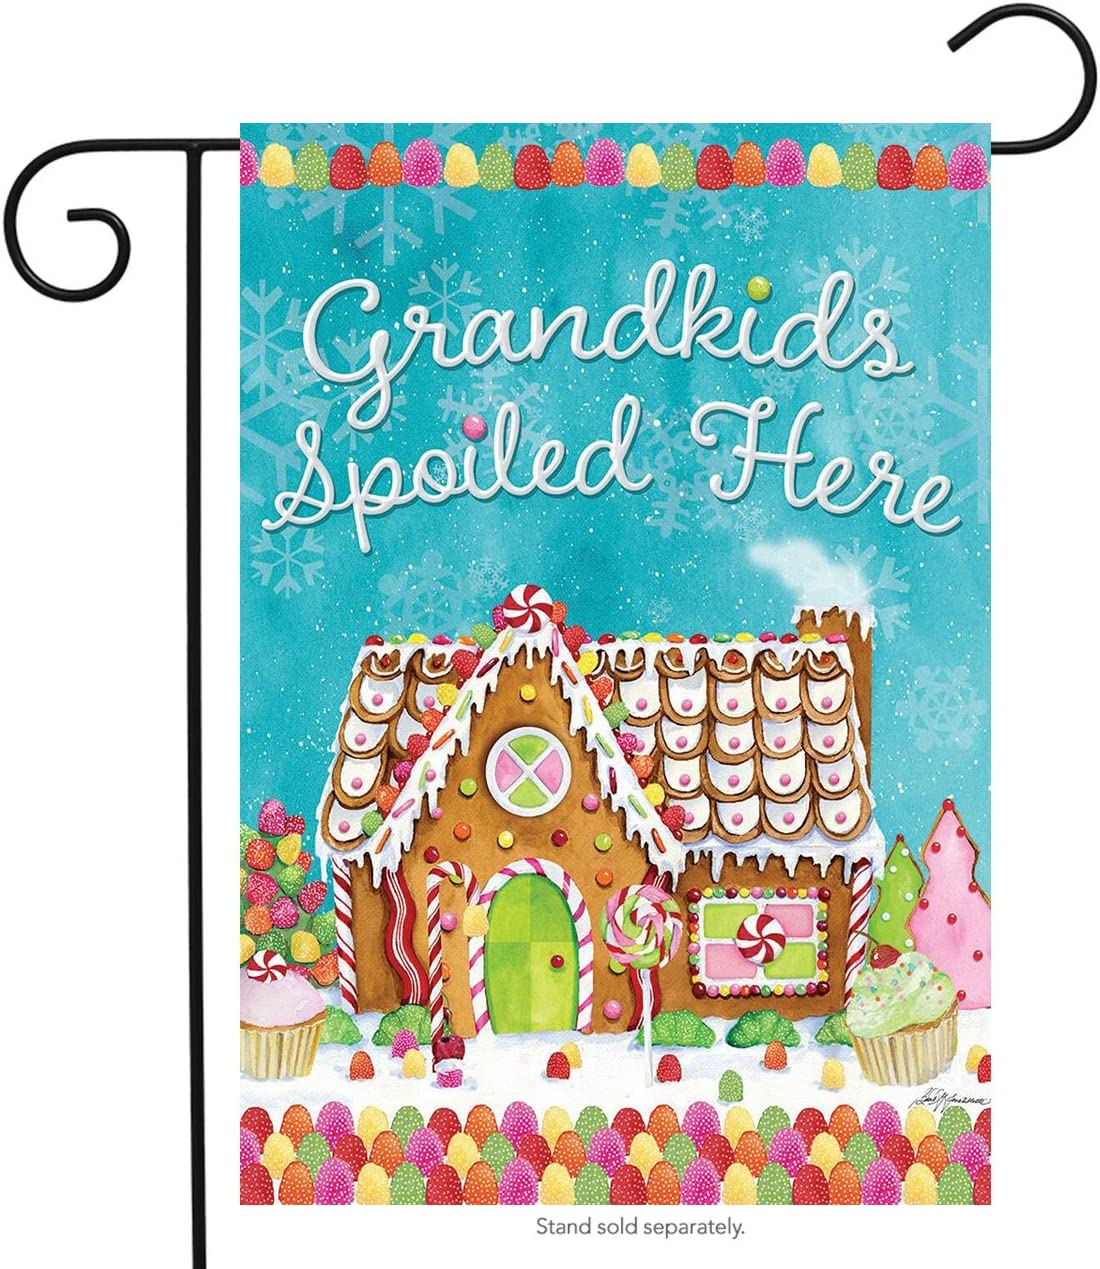 "Briarwood Lane Grandkids Spoiled Here Garden Flag Christmas Gingerbread House 12.5"" x 18"""